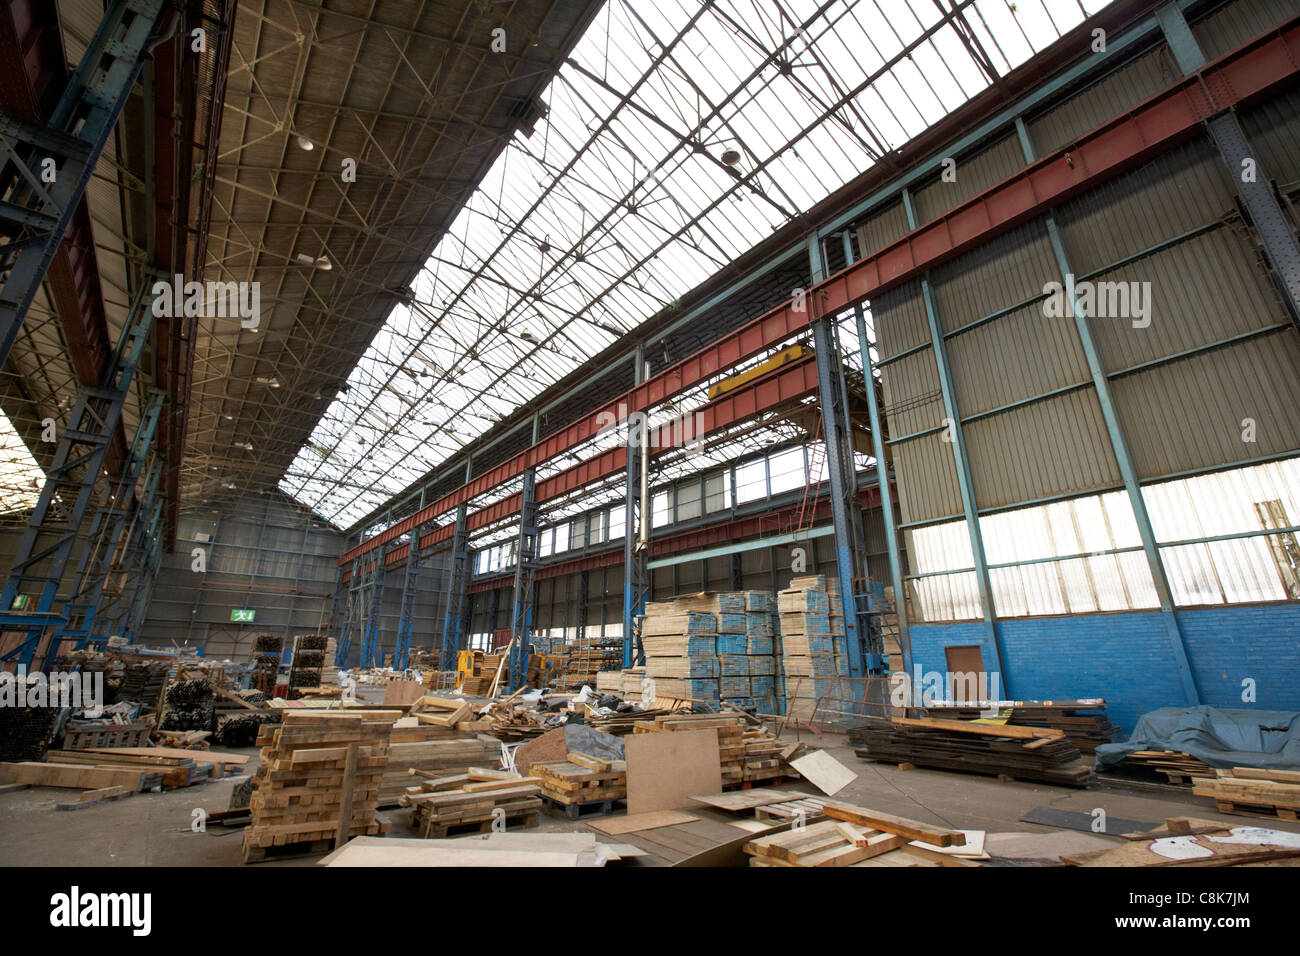 interior of an old factory warehouse unit containing building materials belfast northern ireland uk - Stock Image